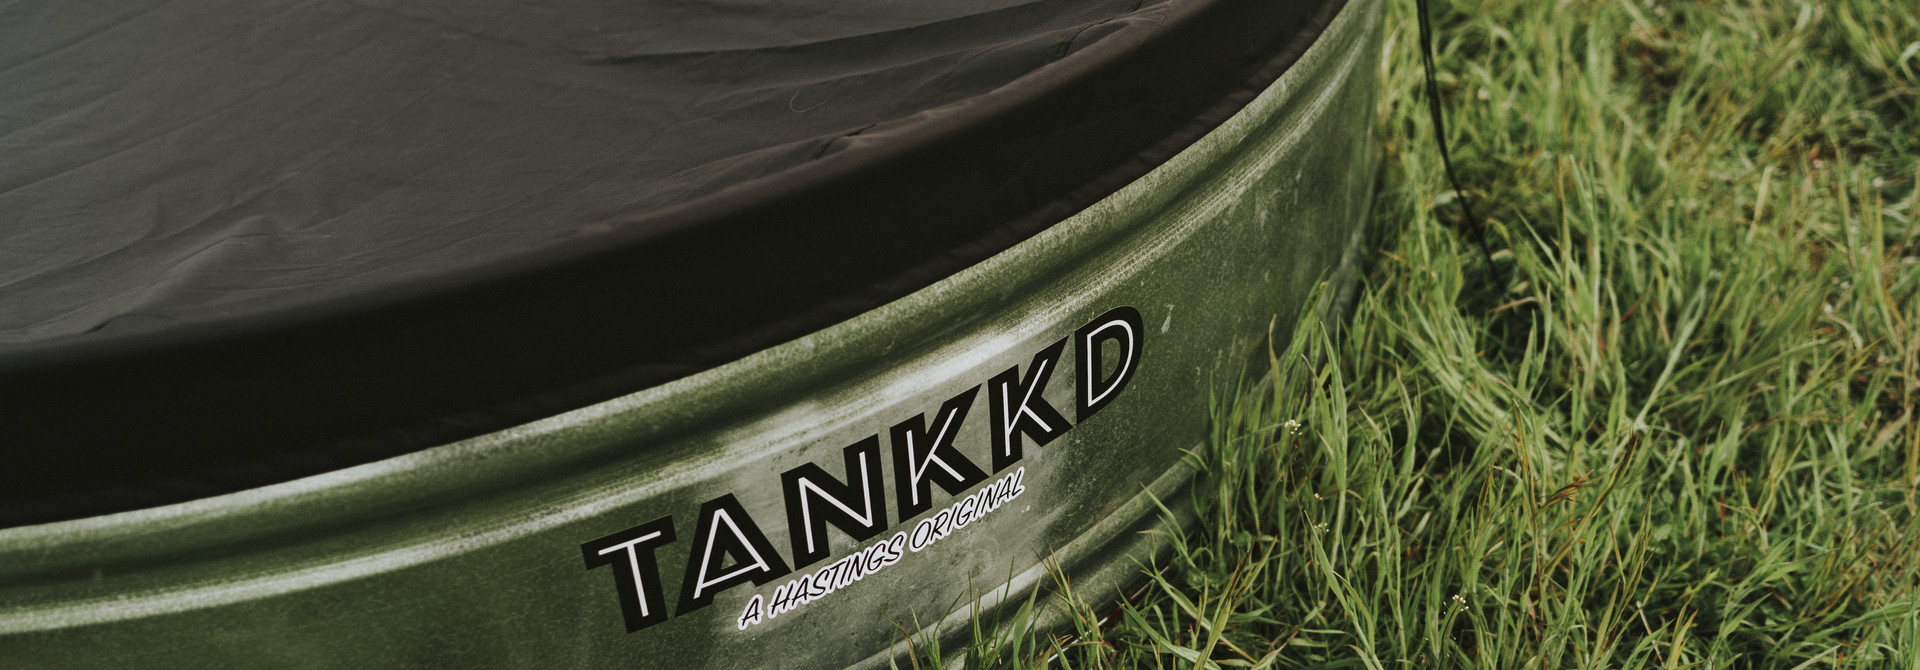 Tankkd couverture